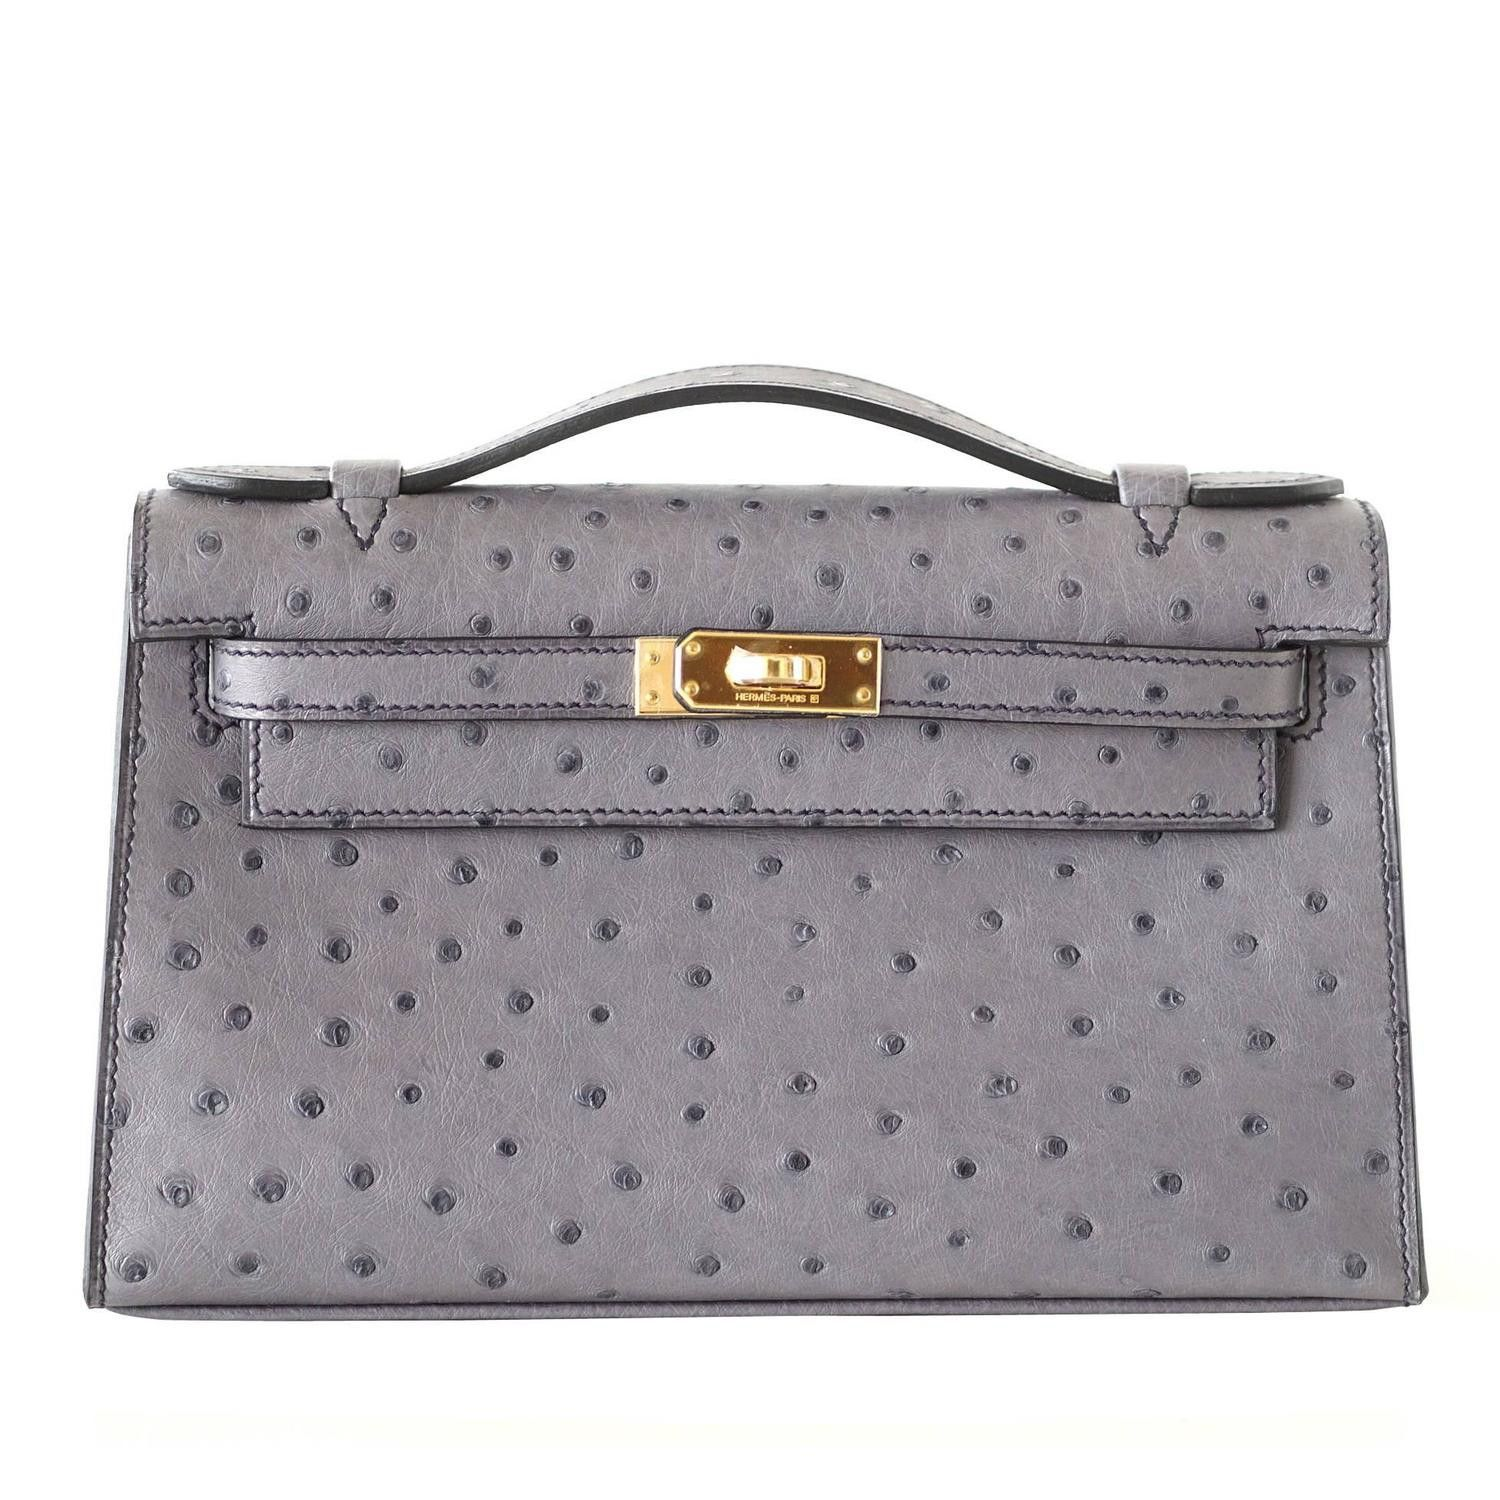 f5cd1a7d9e93 Hermes Kelly Pochette Clutch Bag Ostrich Gris Agate Gold Hardware ...